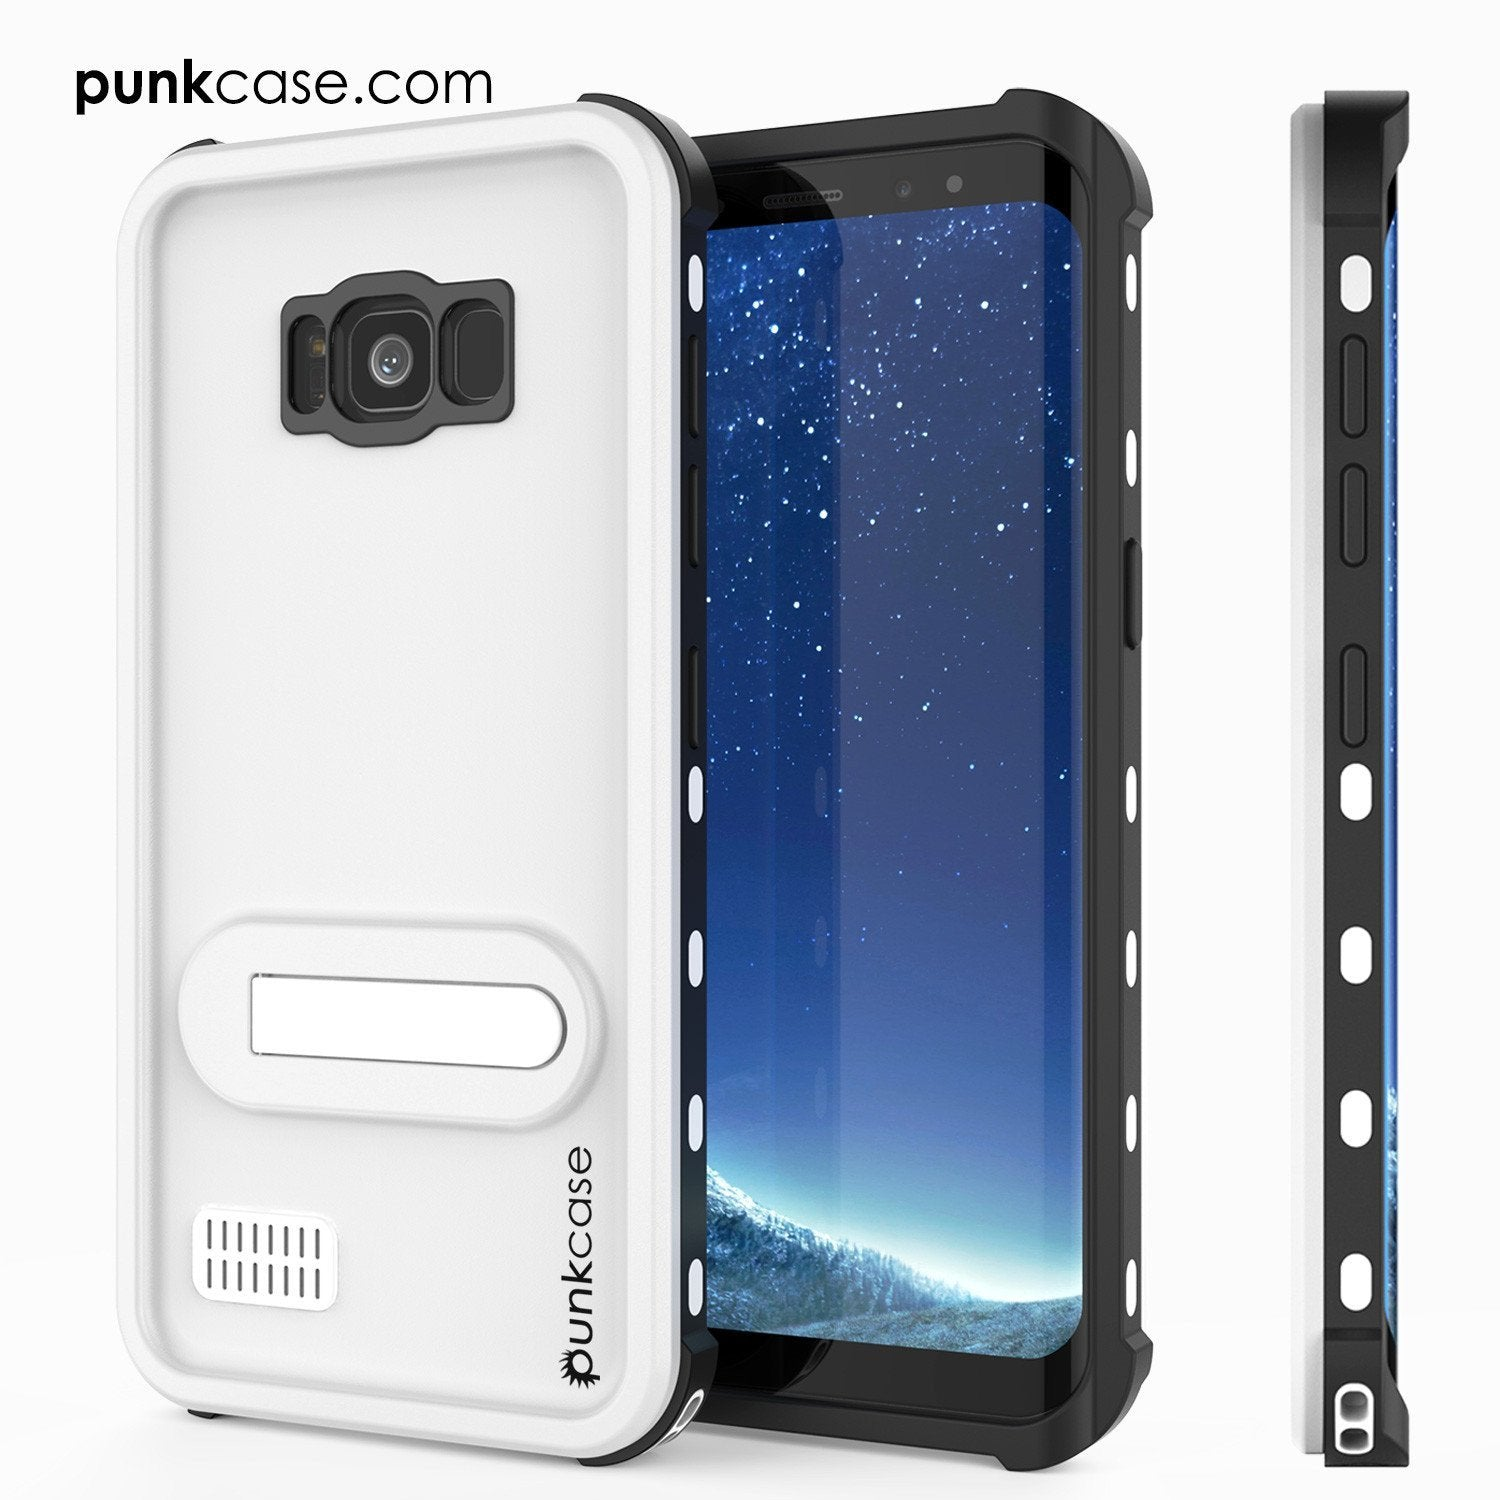 Galaxy S8 Punkcase KickStud Series W/Built-In Kickstand Case, White